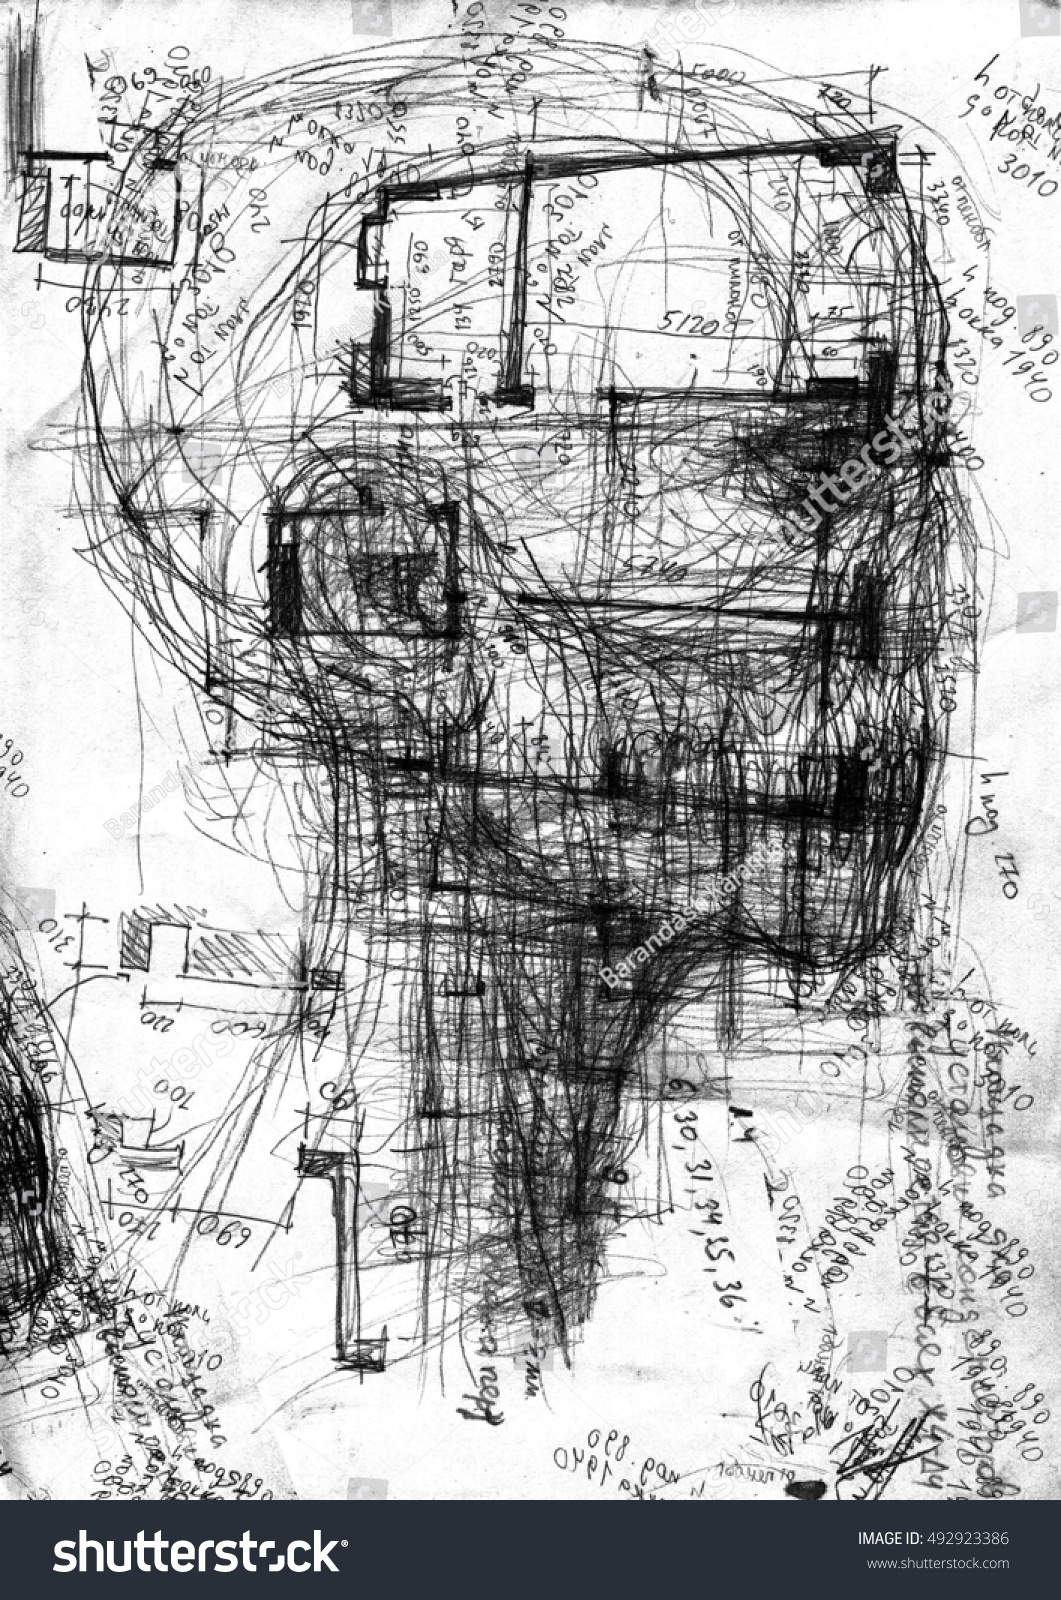 Abstract sketch of the head with the architectural drawing grunge texture